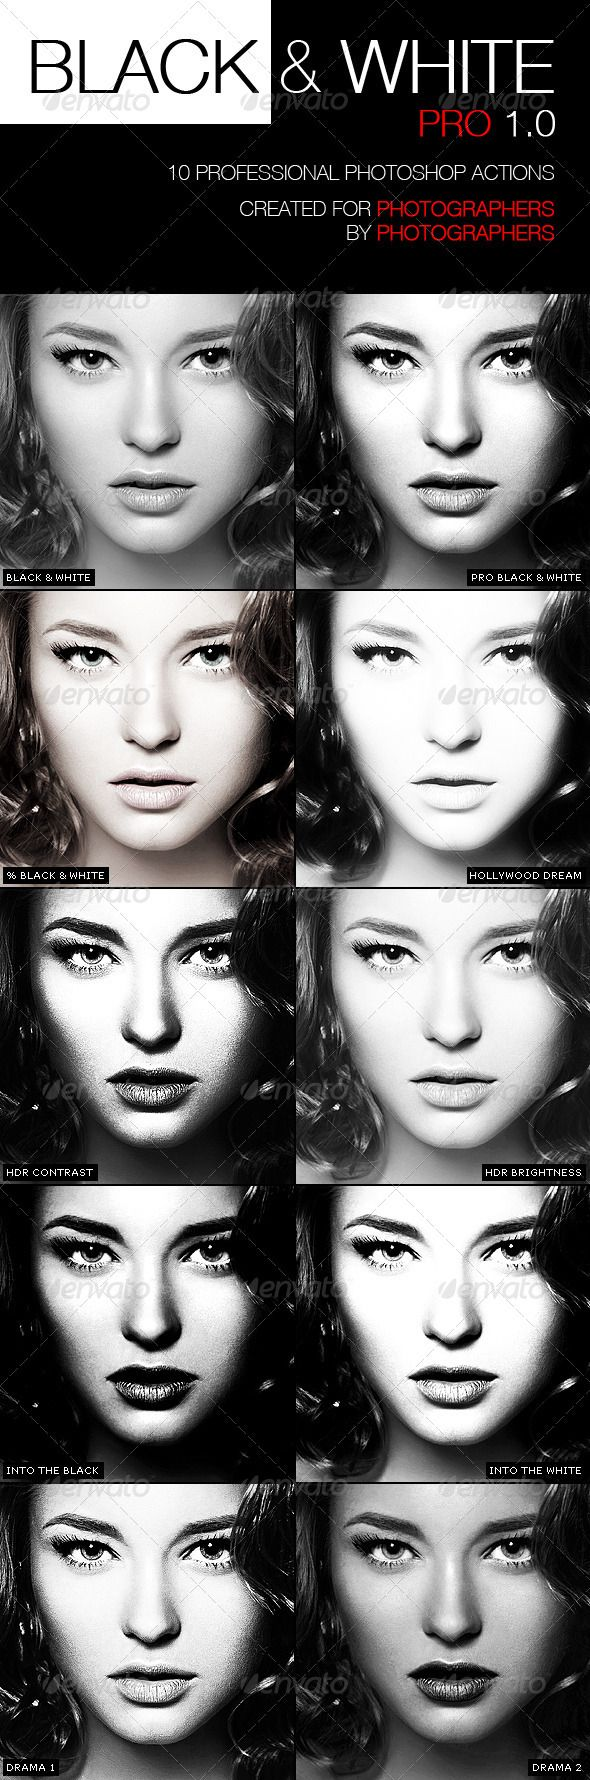 PRO Black White Photographer Actions - Photo Effects Actions